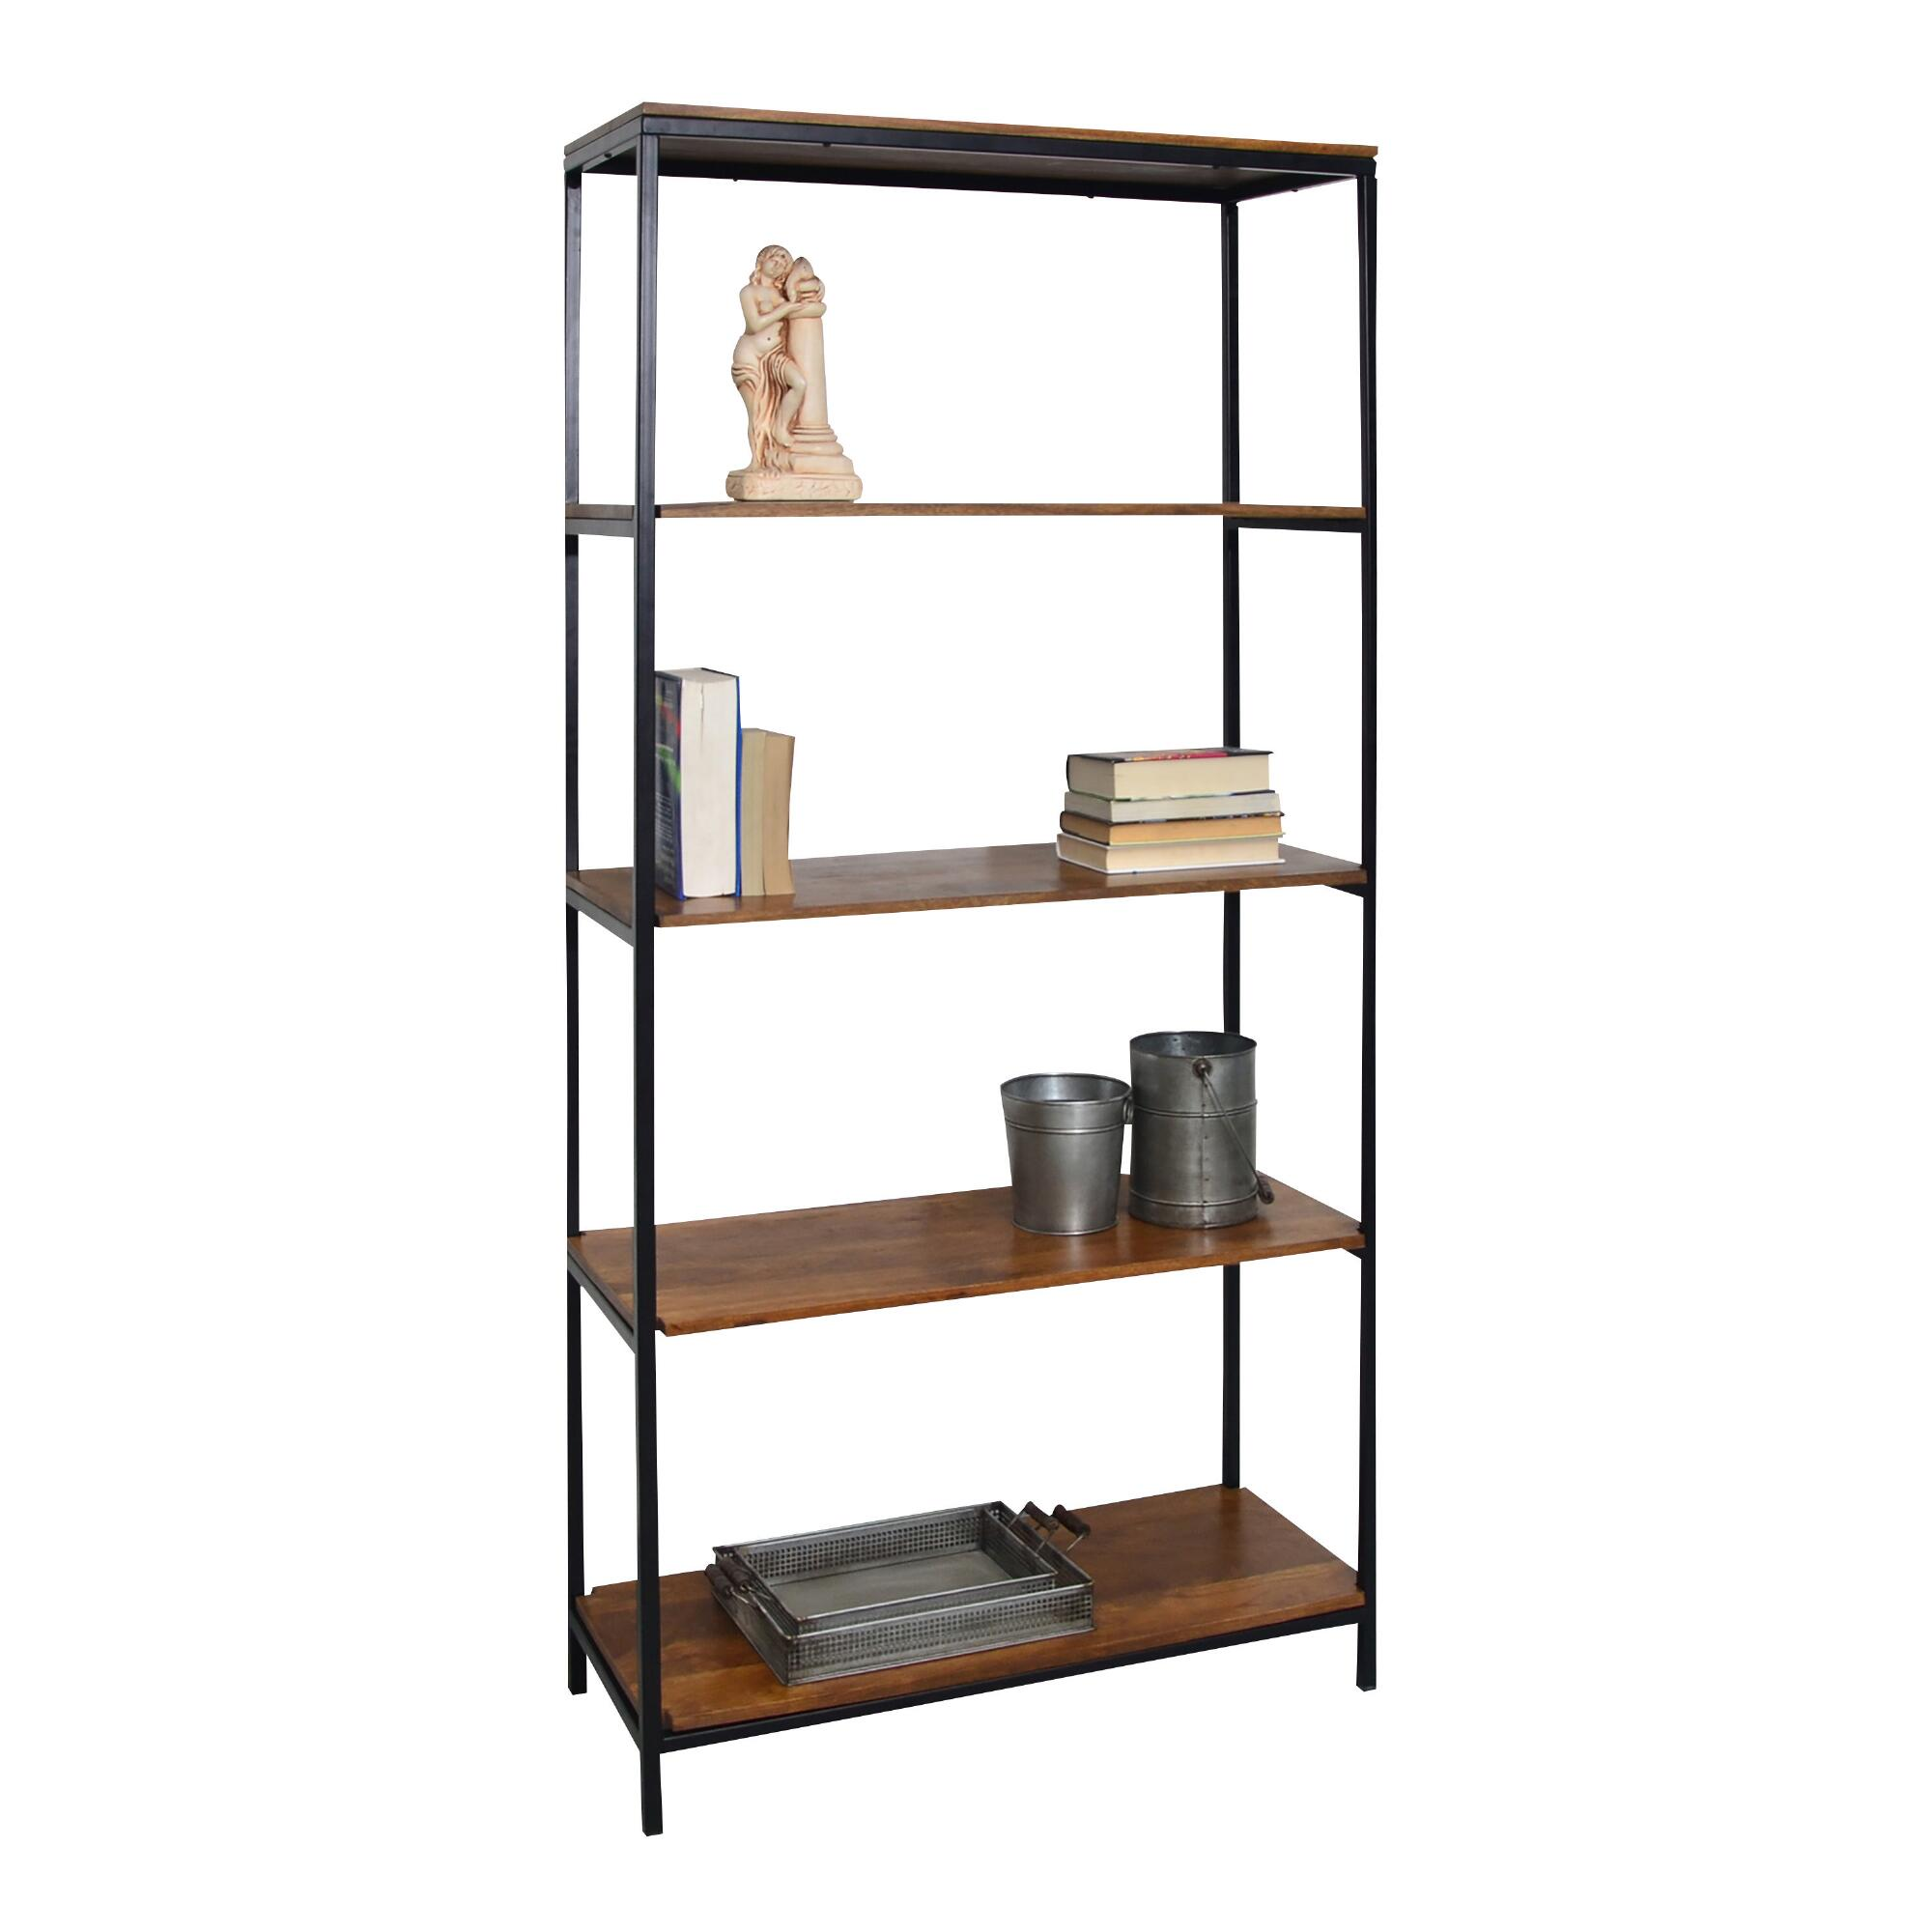 kitchen cart wheels with Wood And Metal Williard Tall Bookshelf on Water Carrier further Wood and metal williard tall bookshelf in addition Lamborghini Sesto Elemento Scale Model 136 Blue besides Formica Colors further 50378250.